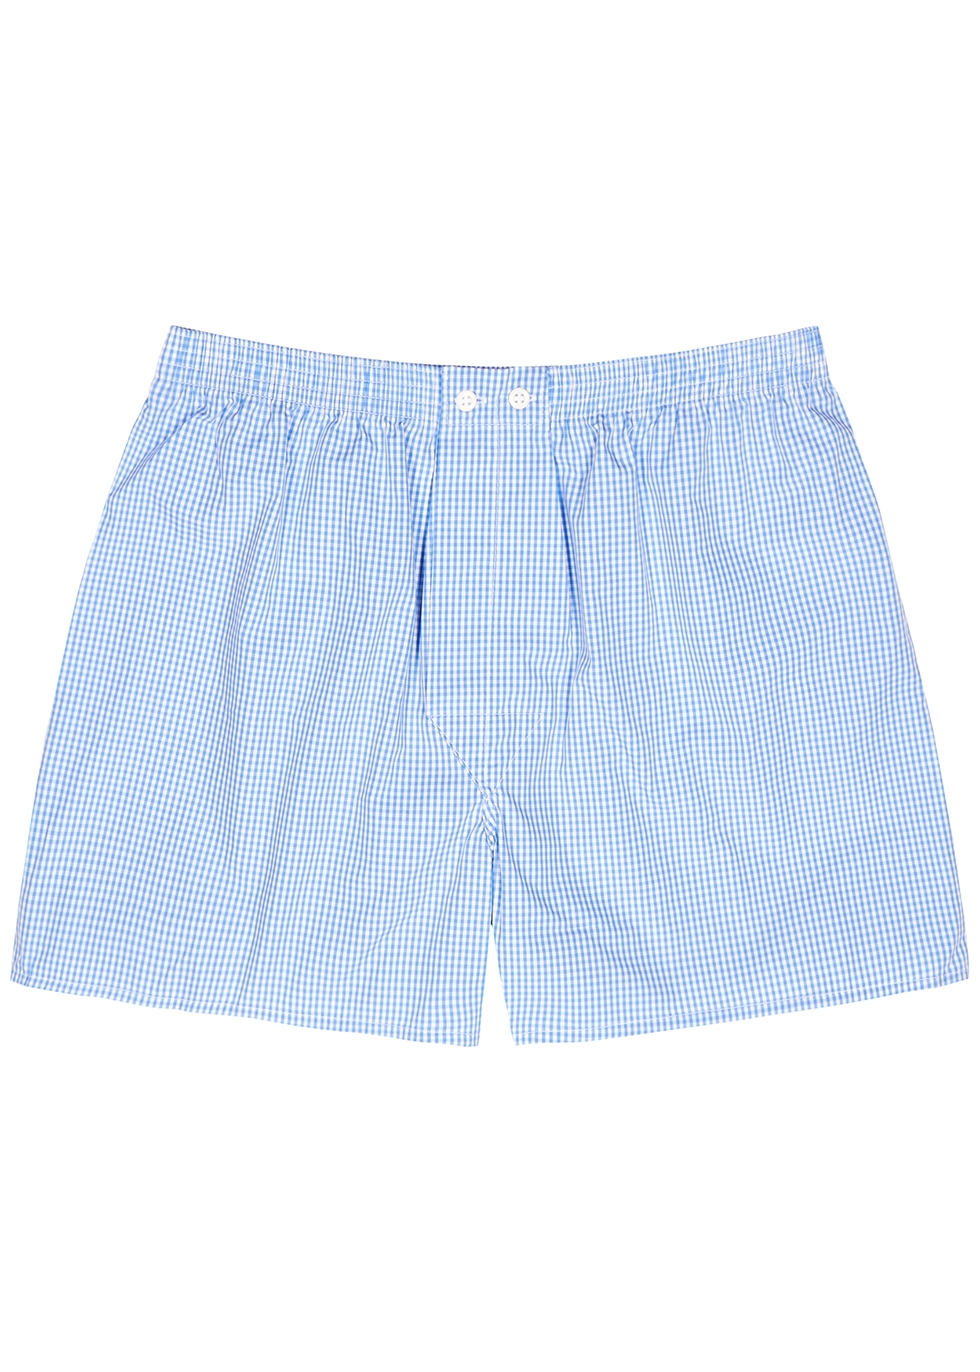 Gingham 1 blue cotton boxer shorts